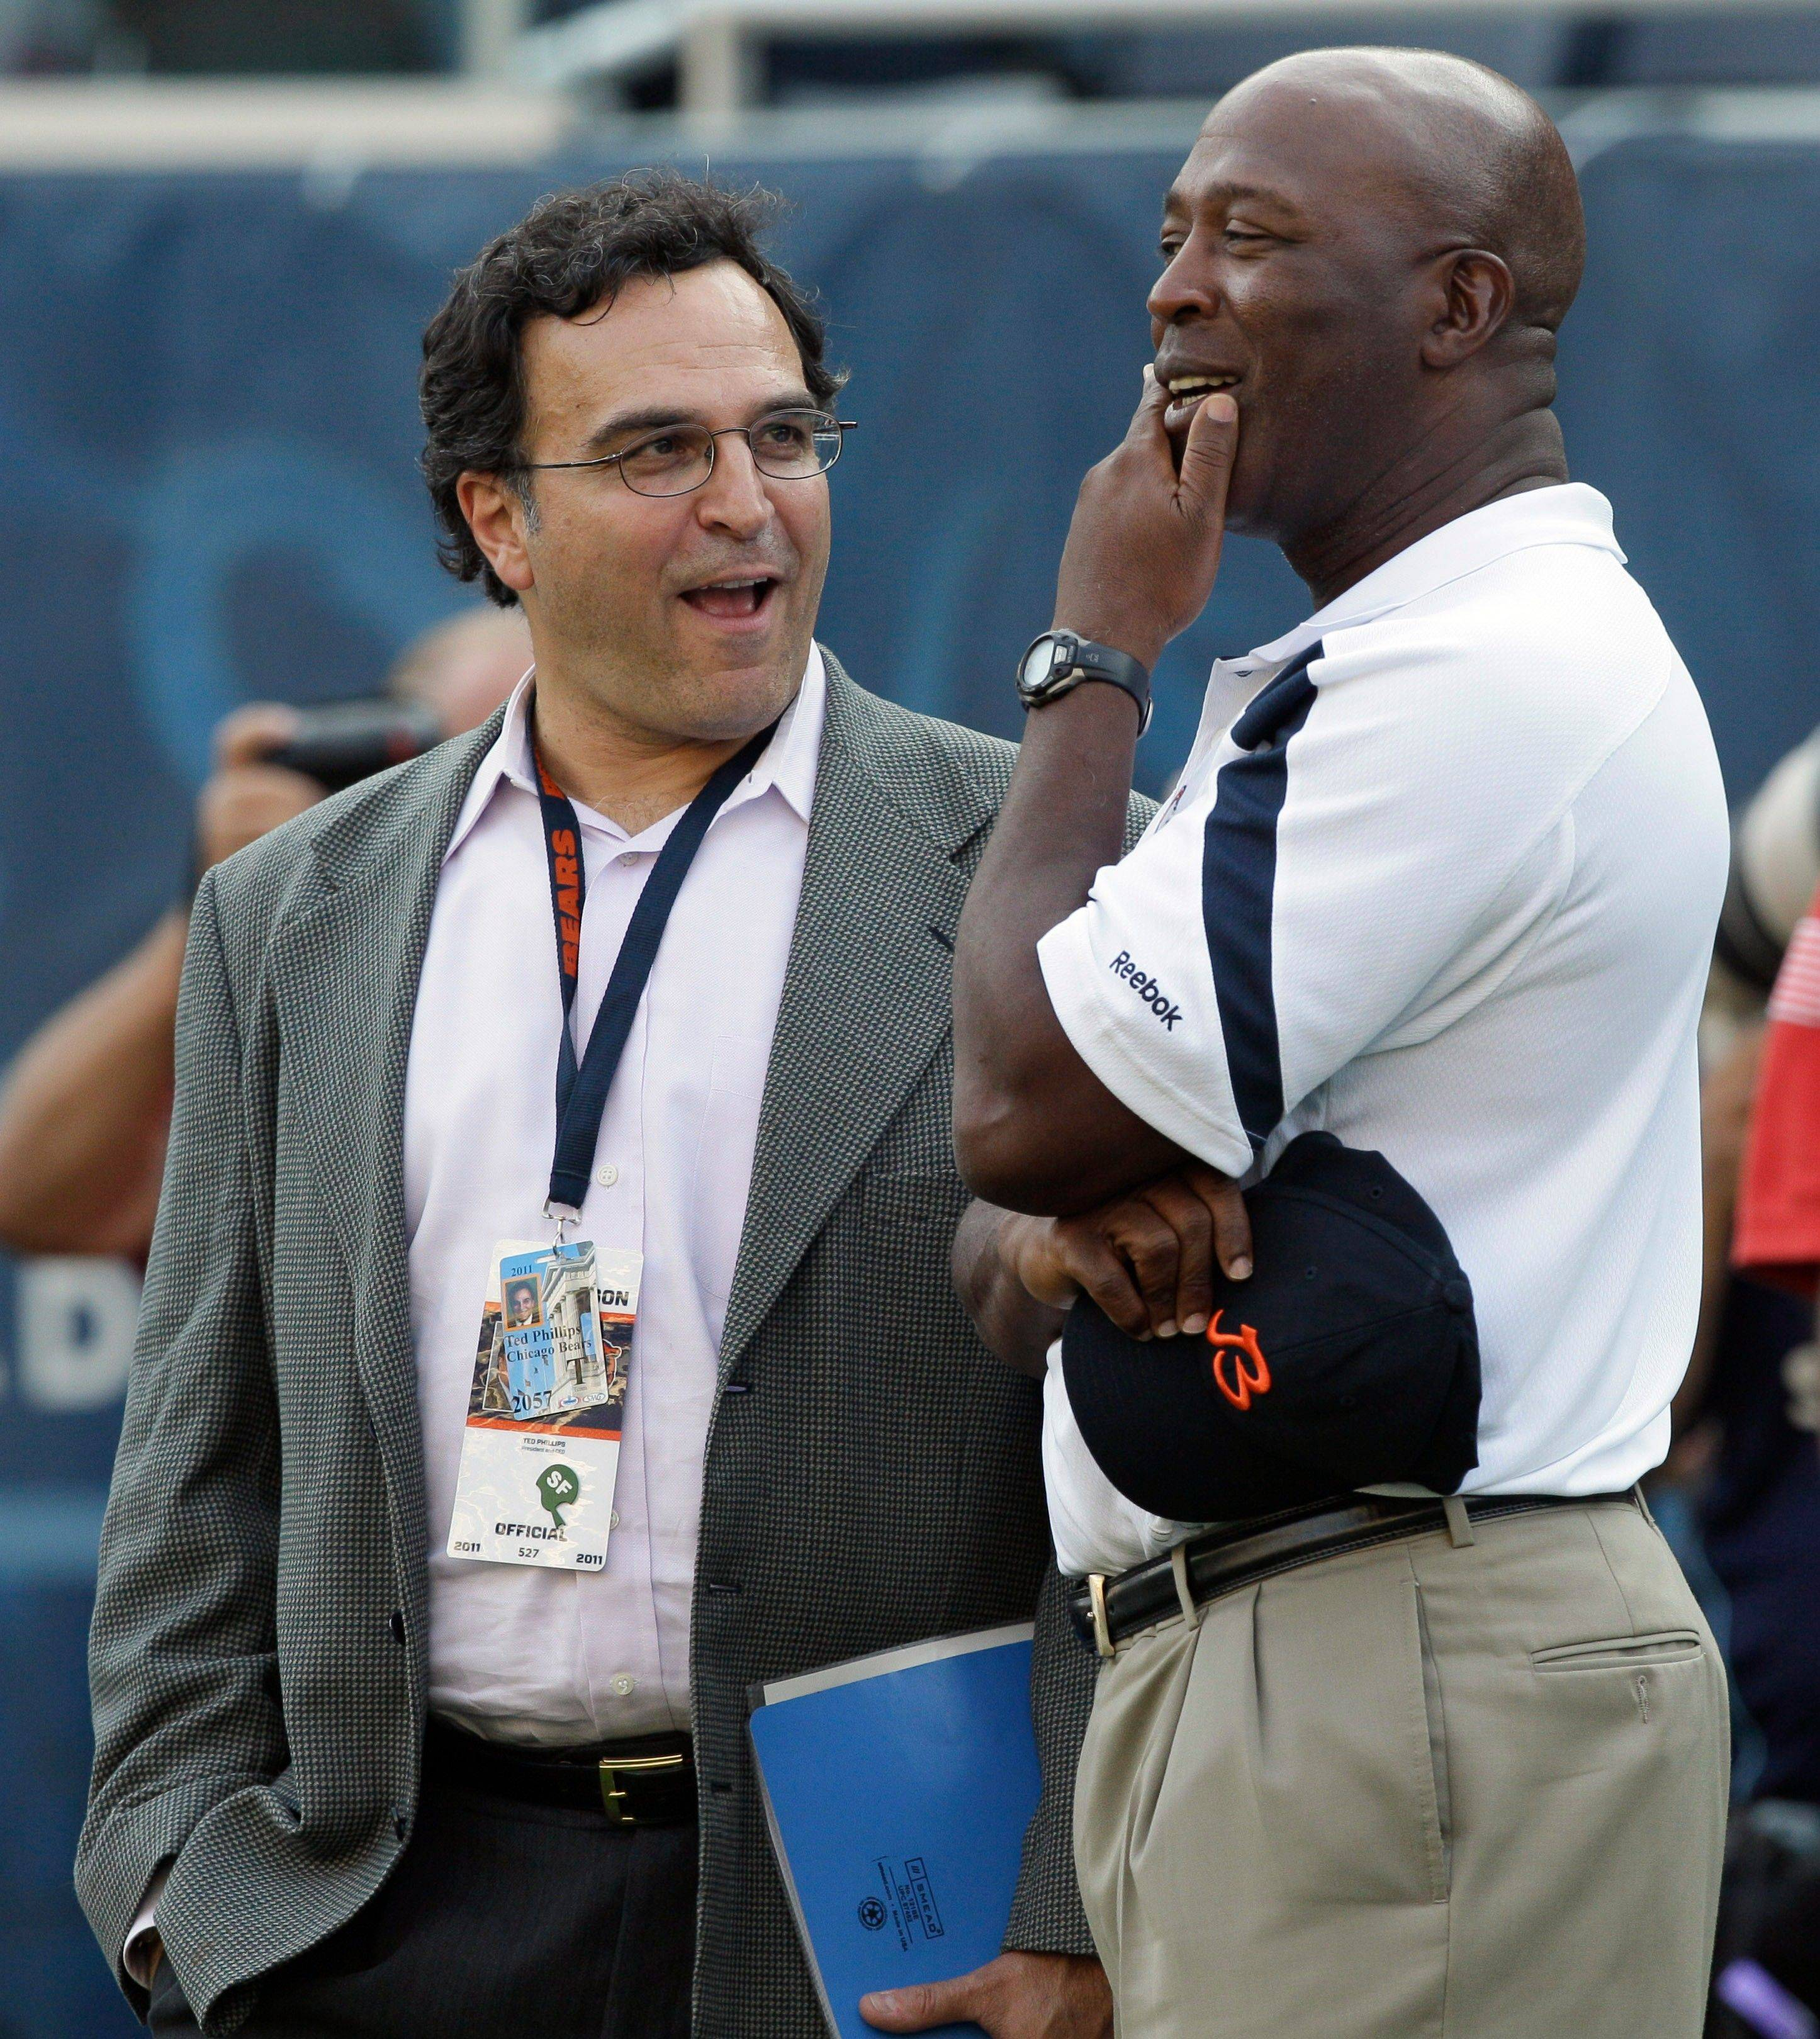 Chicago Bears president and CEO Ted Phillips, left, has hired Phil Emery as the team's new general manager to work with head coach Lovie Smith, right.